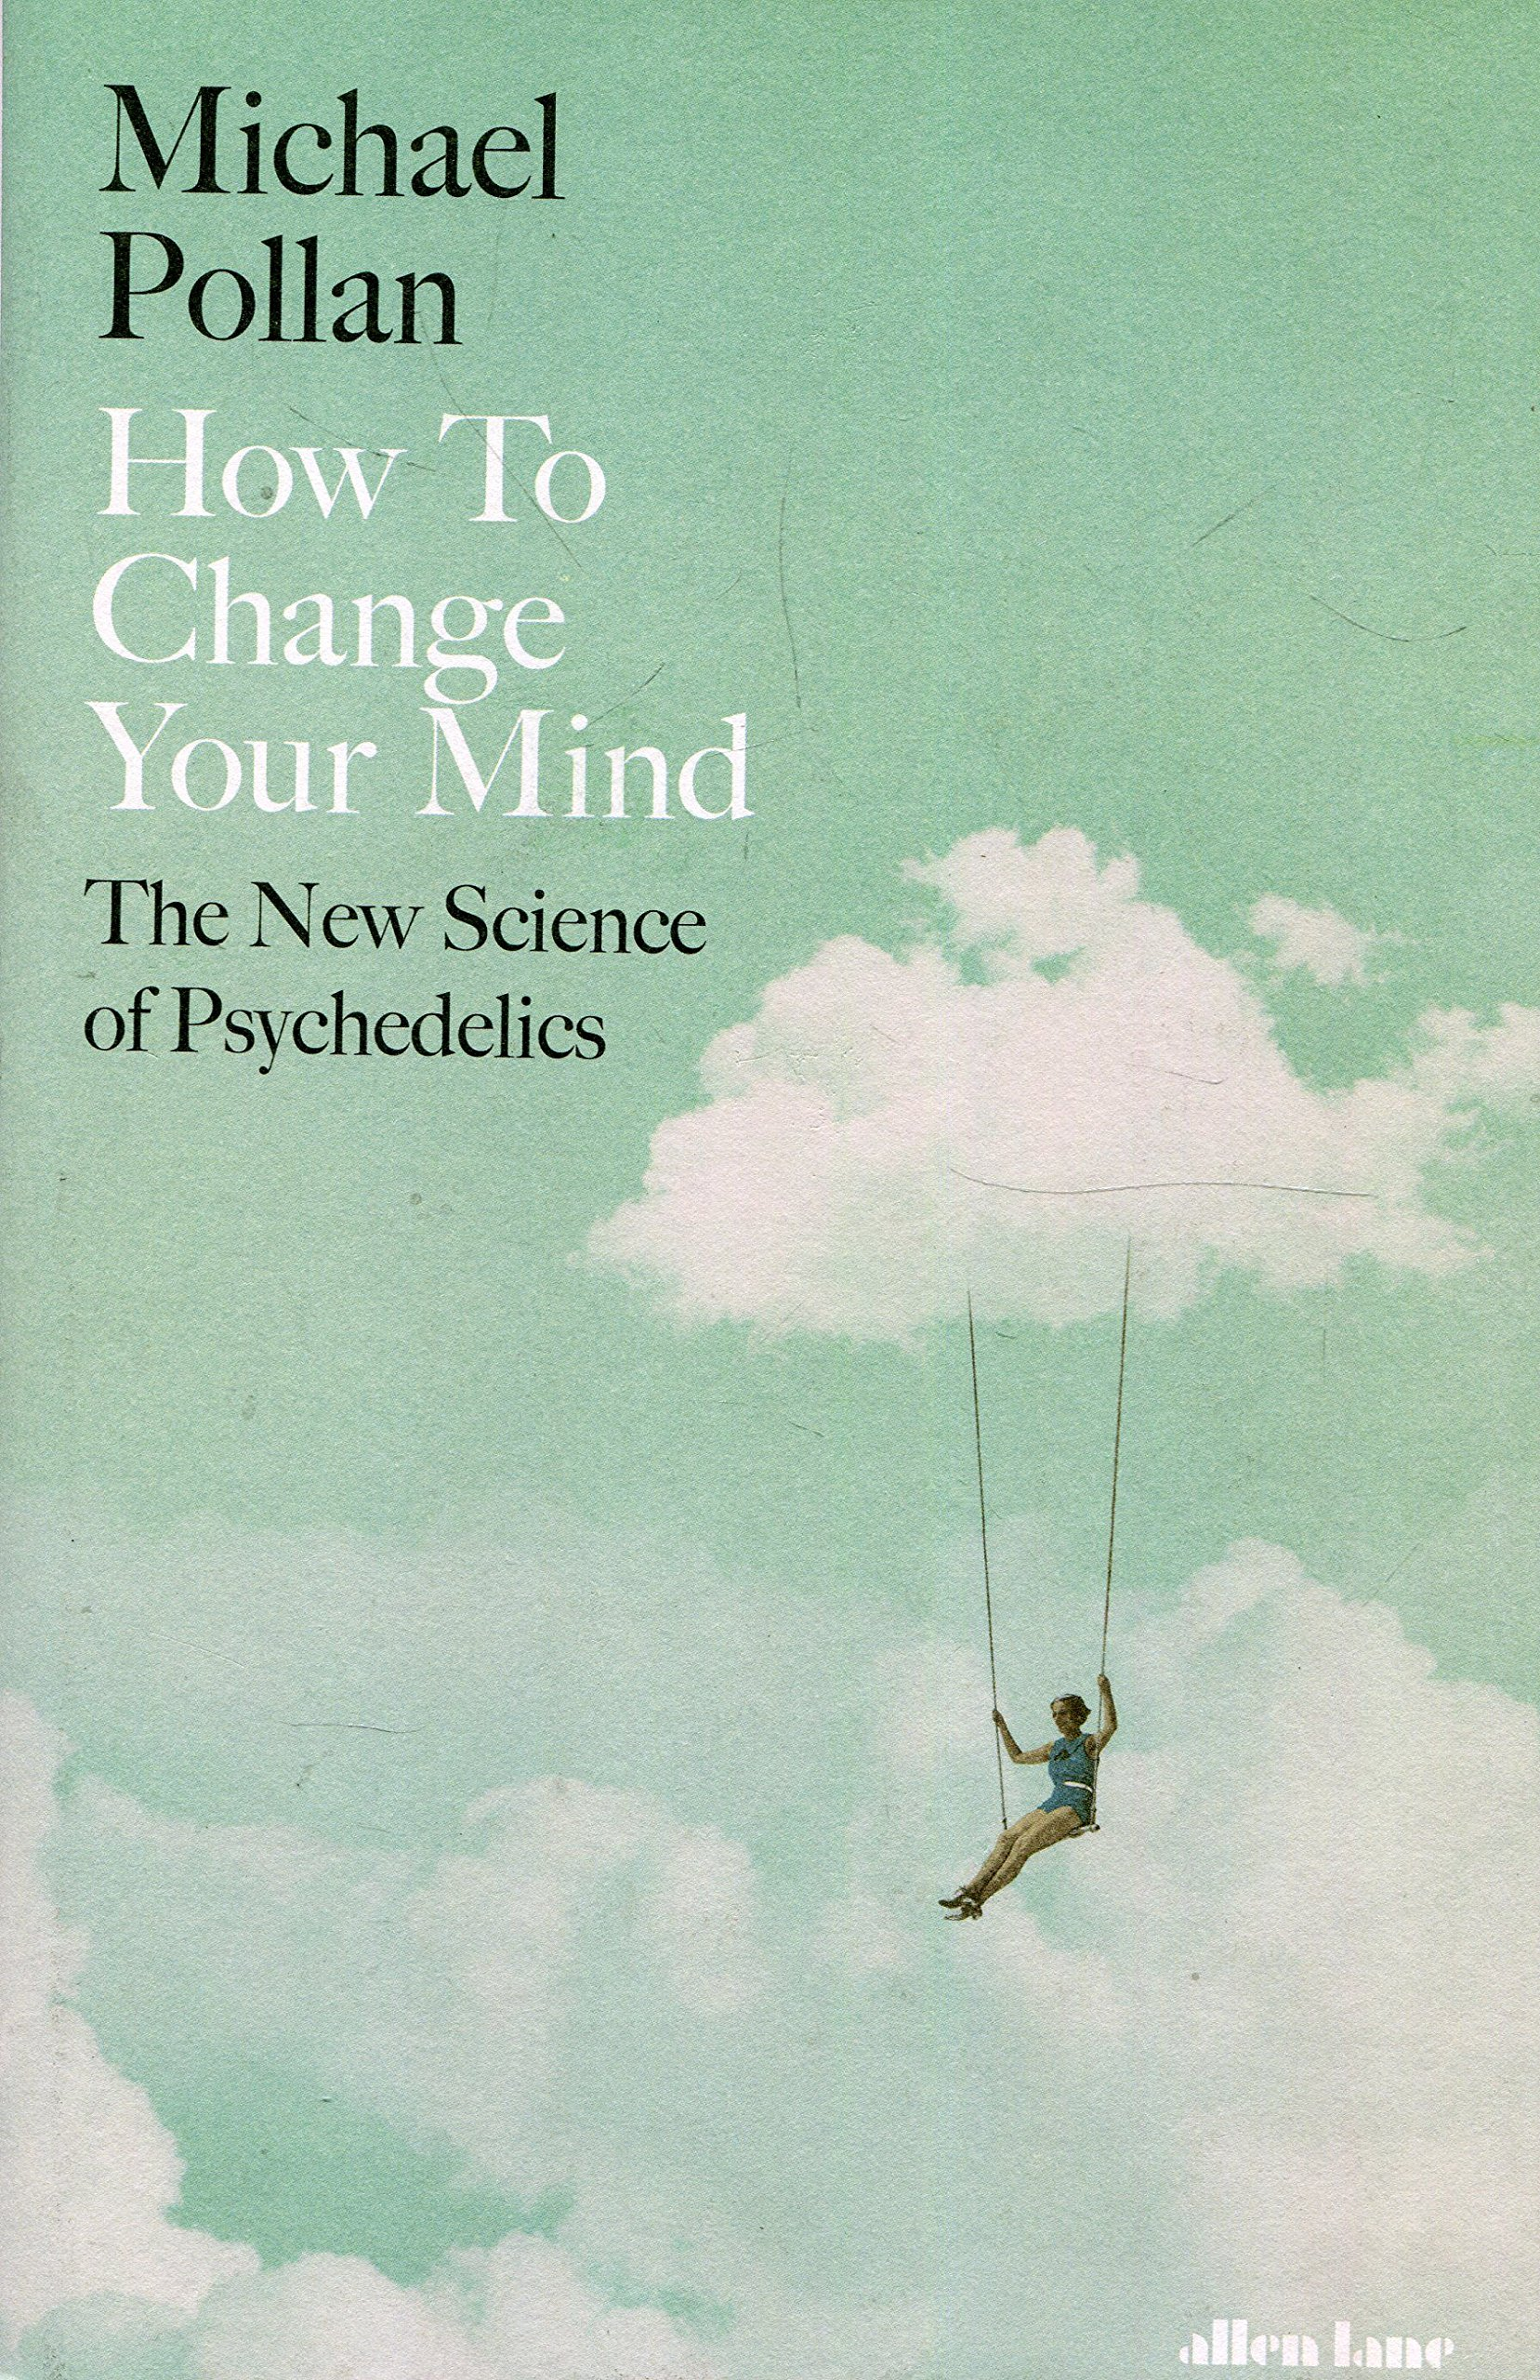 Michael Pollan's  How to Change Your Mind